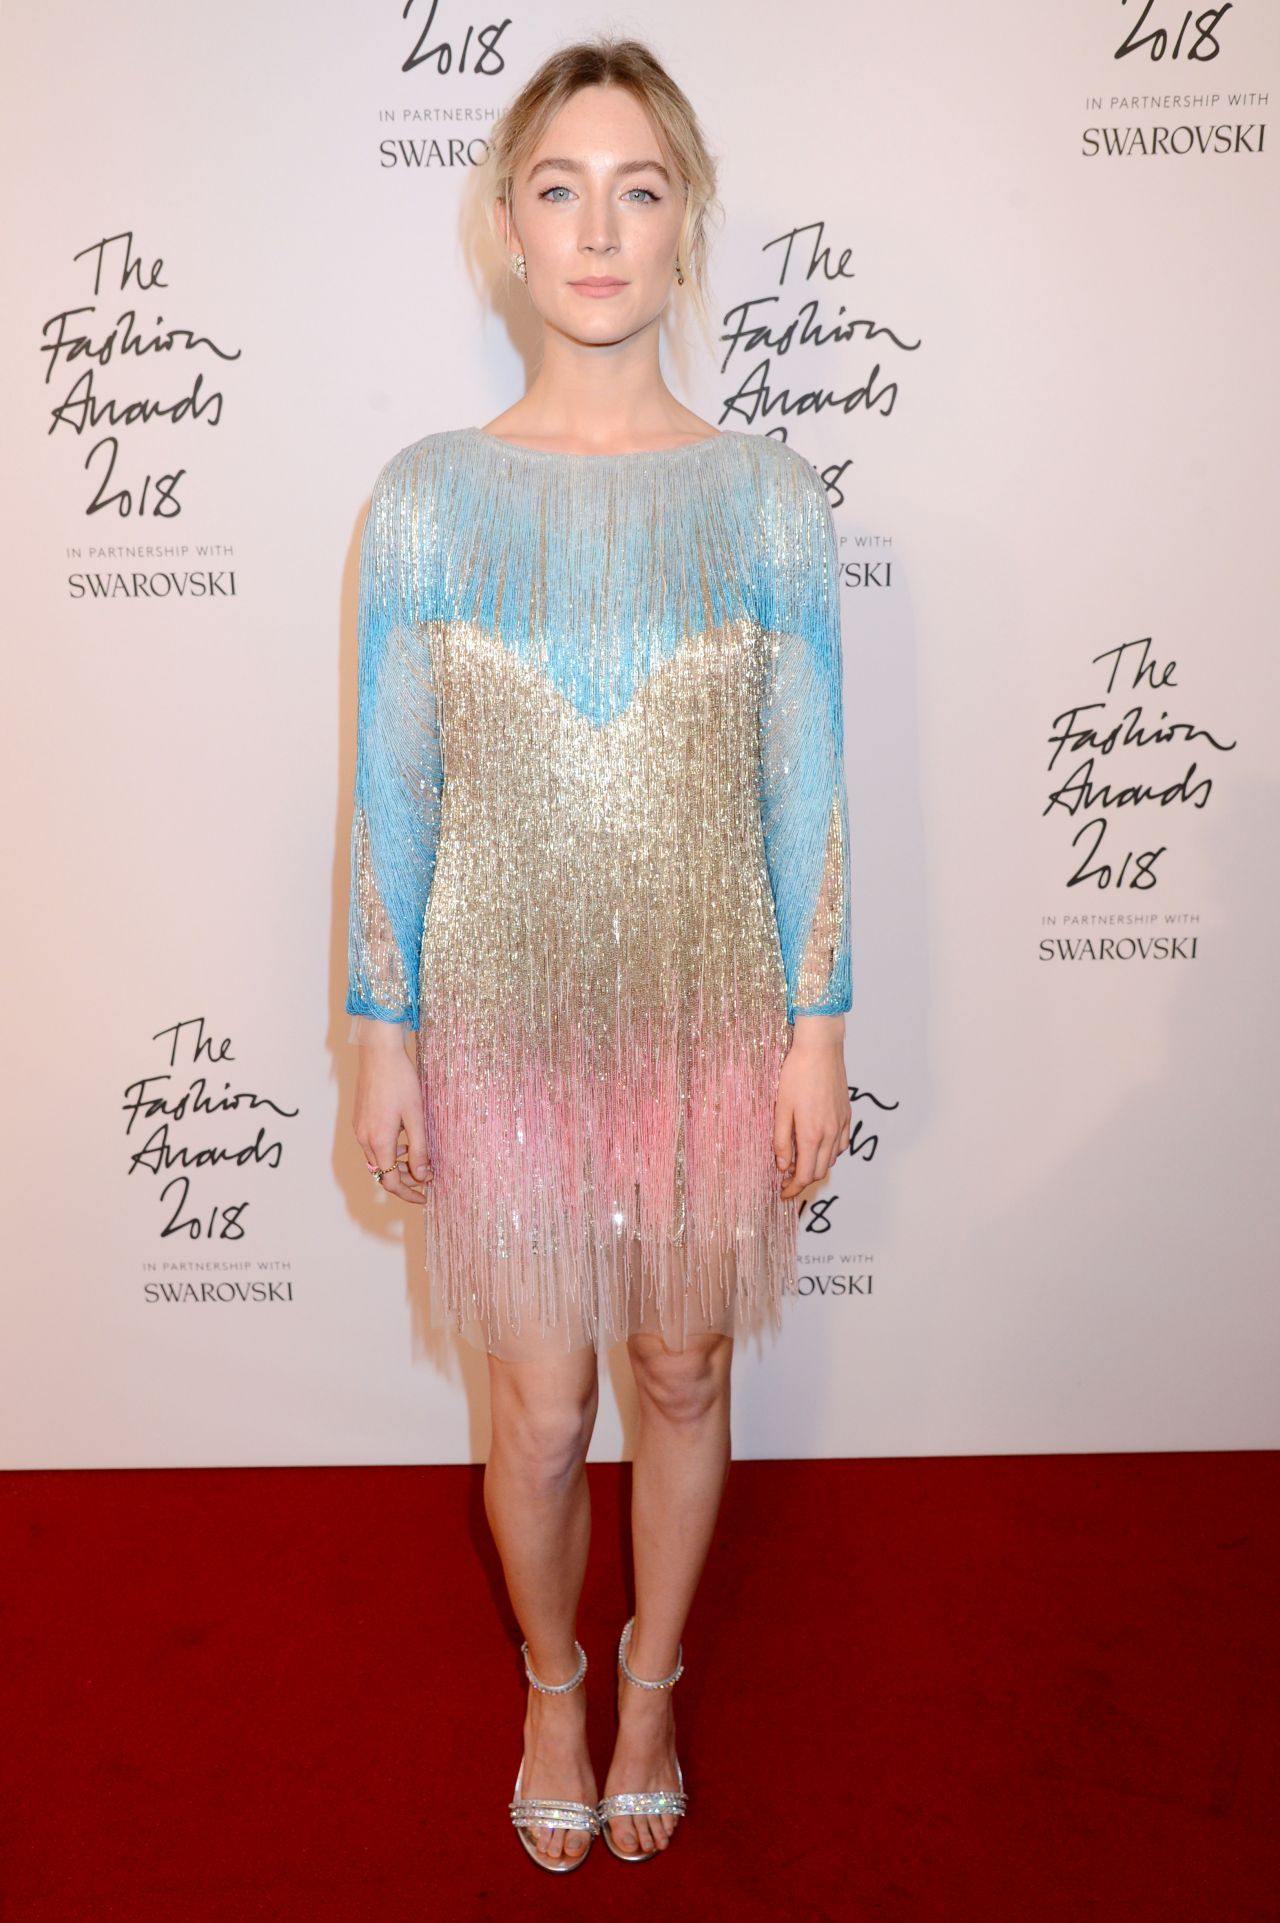 https://celebmafia.com/wp-content/uploads/2018/12/saoirse-ronan-the-fashion-awards-2018-press-room-in-london-2.jpg